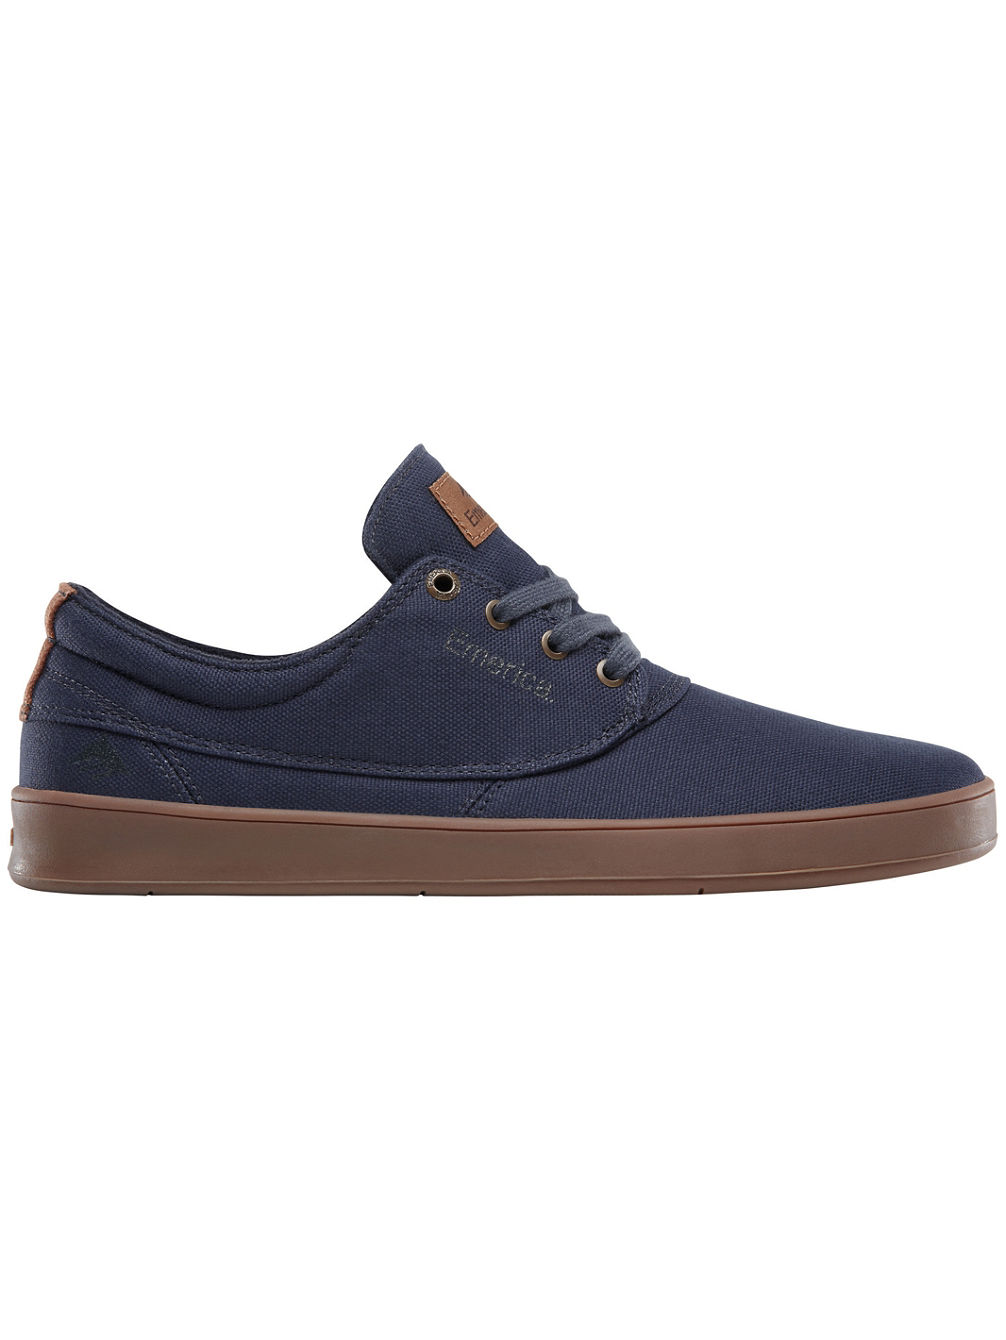 Emery Skate Shoes